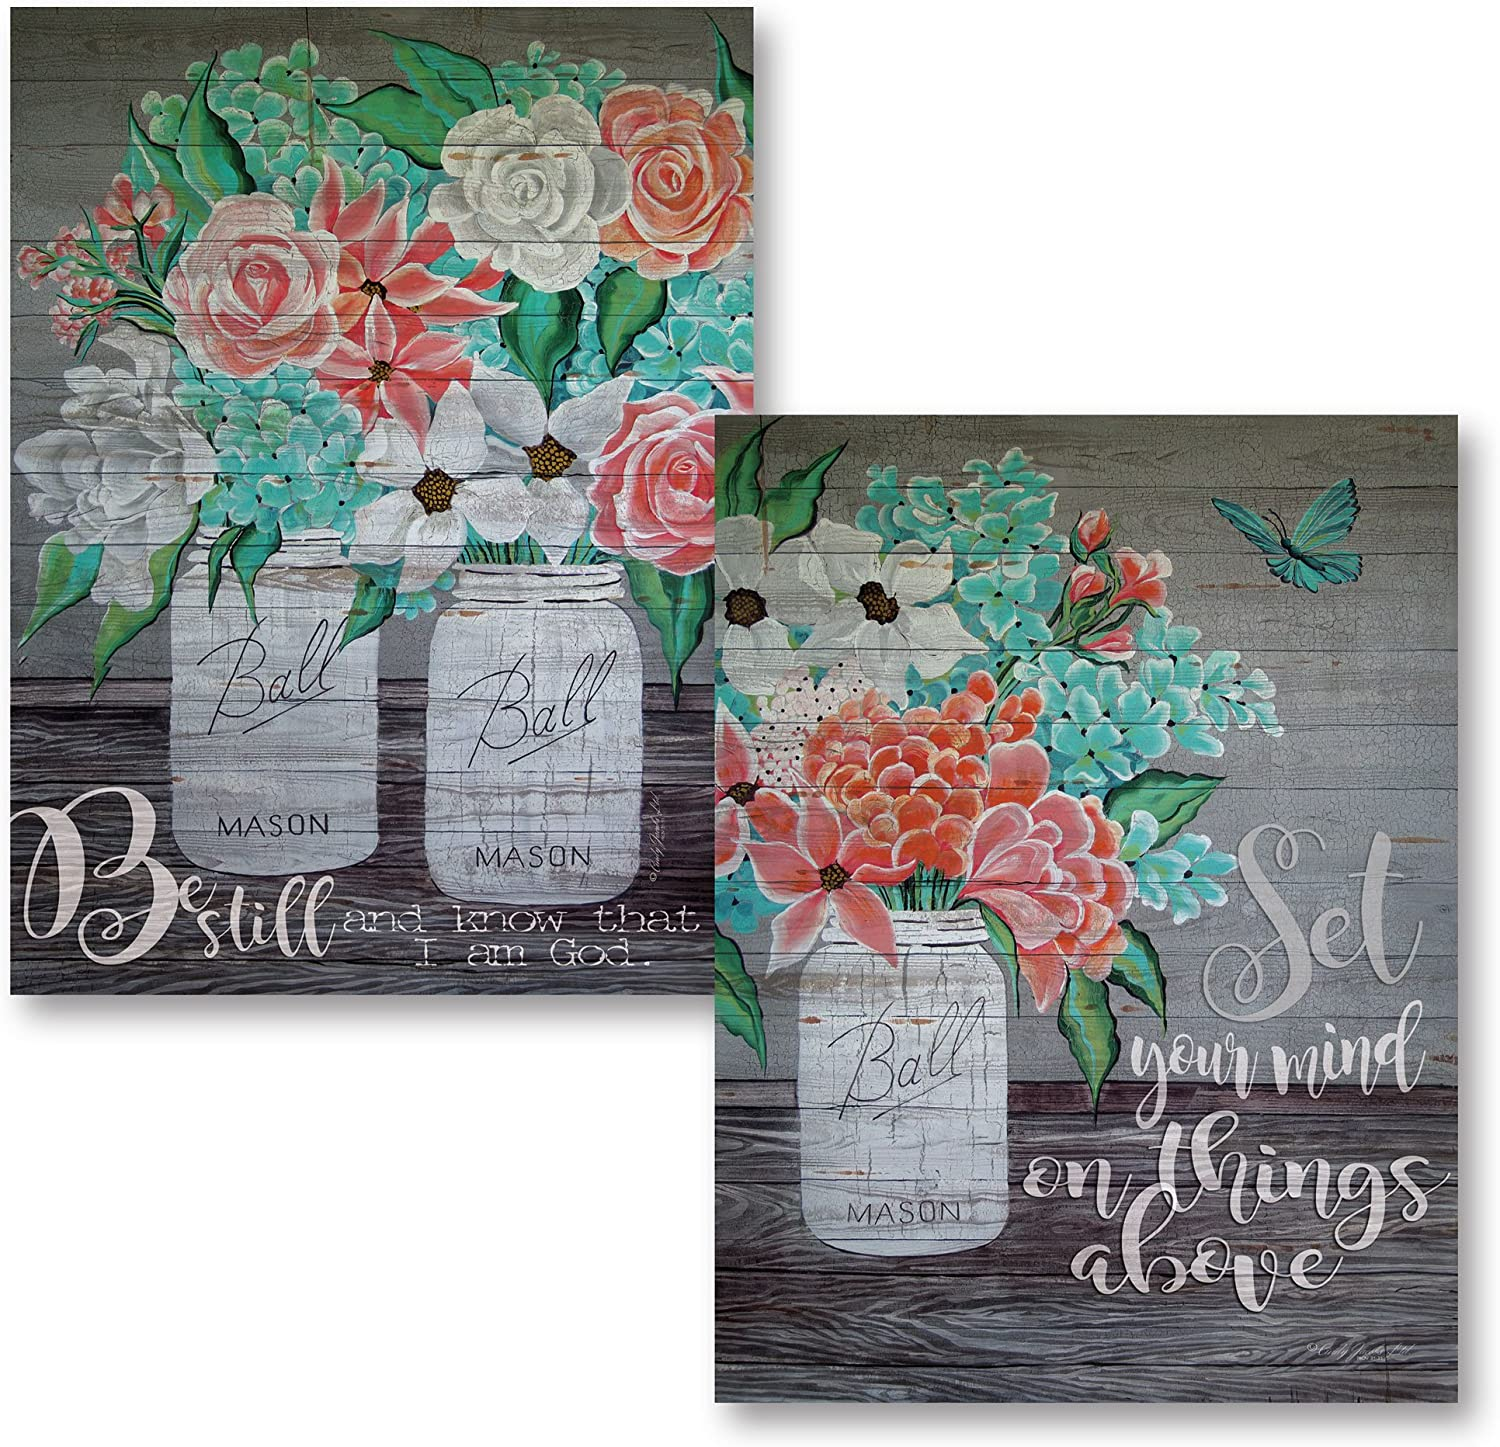 Gango Home Decor Country-Rustic Be Still and Know that I am God & Set Your Mind on Things Above by Cindy Jacobs (Printed on Paper); Two 12x16in Unframed Paper Posters